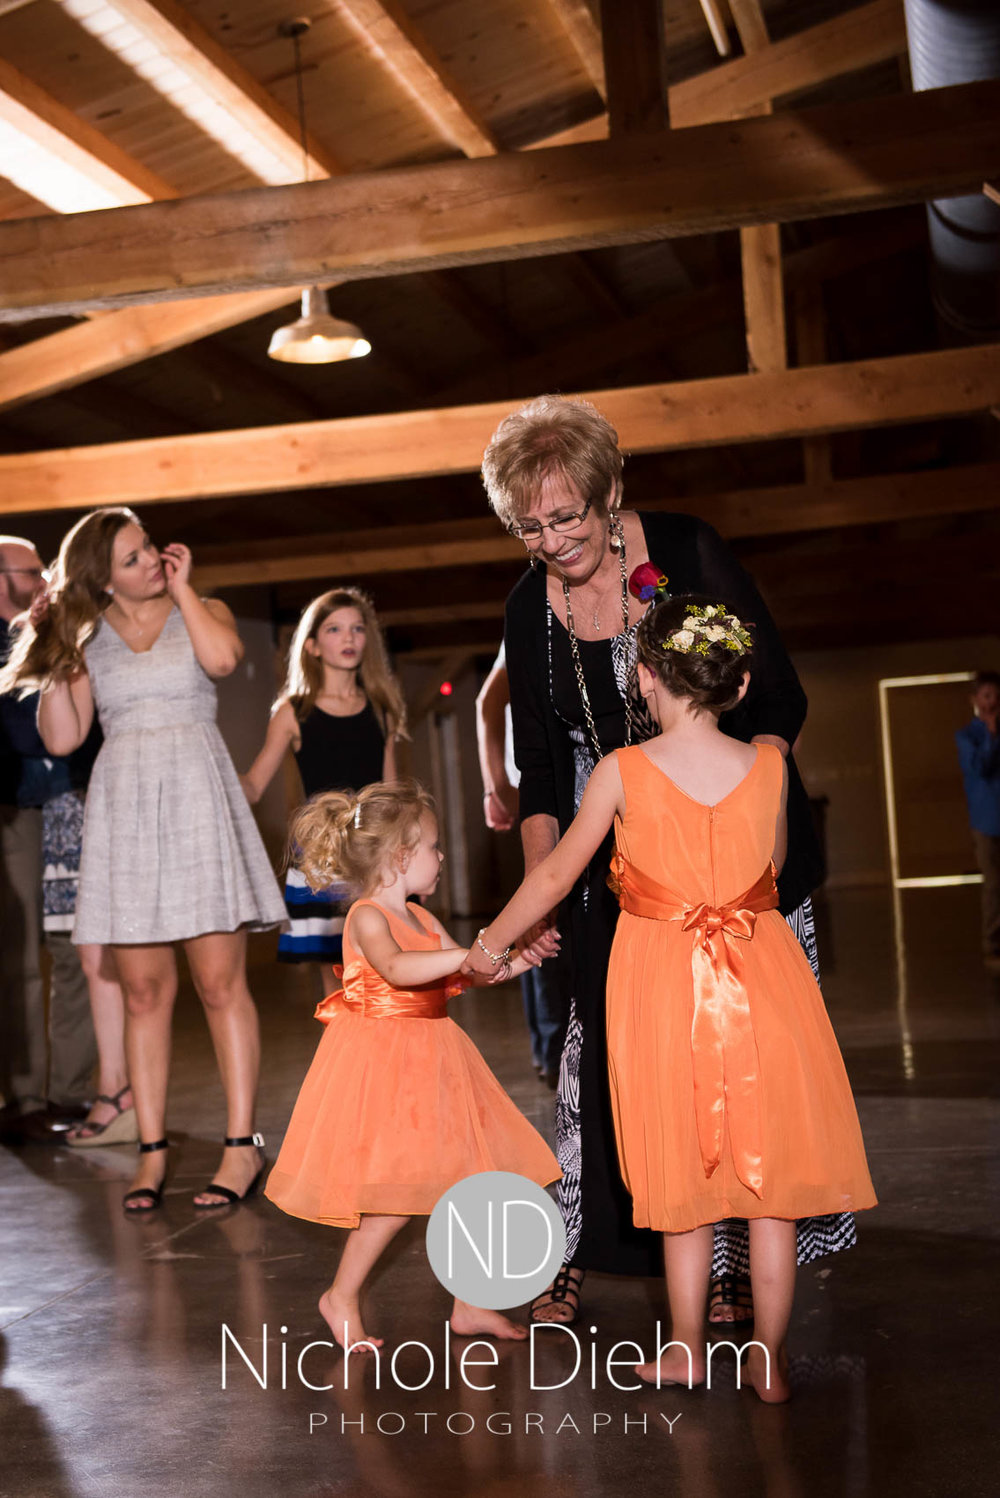 Cedar-Falls-Iowa-Wedding-Photographer-Sioux-Falls-South-Dakota-Emily-Stricklin-Jordy-Reinders-Meadow-Barn-Fall-Nichole-Diehm-Photography-Venue378.jpg